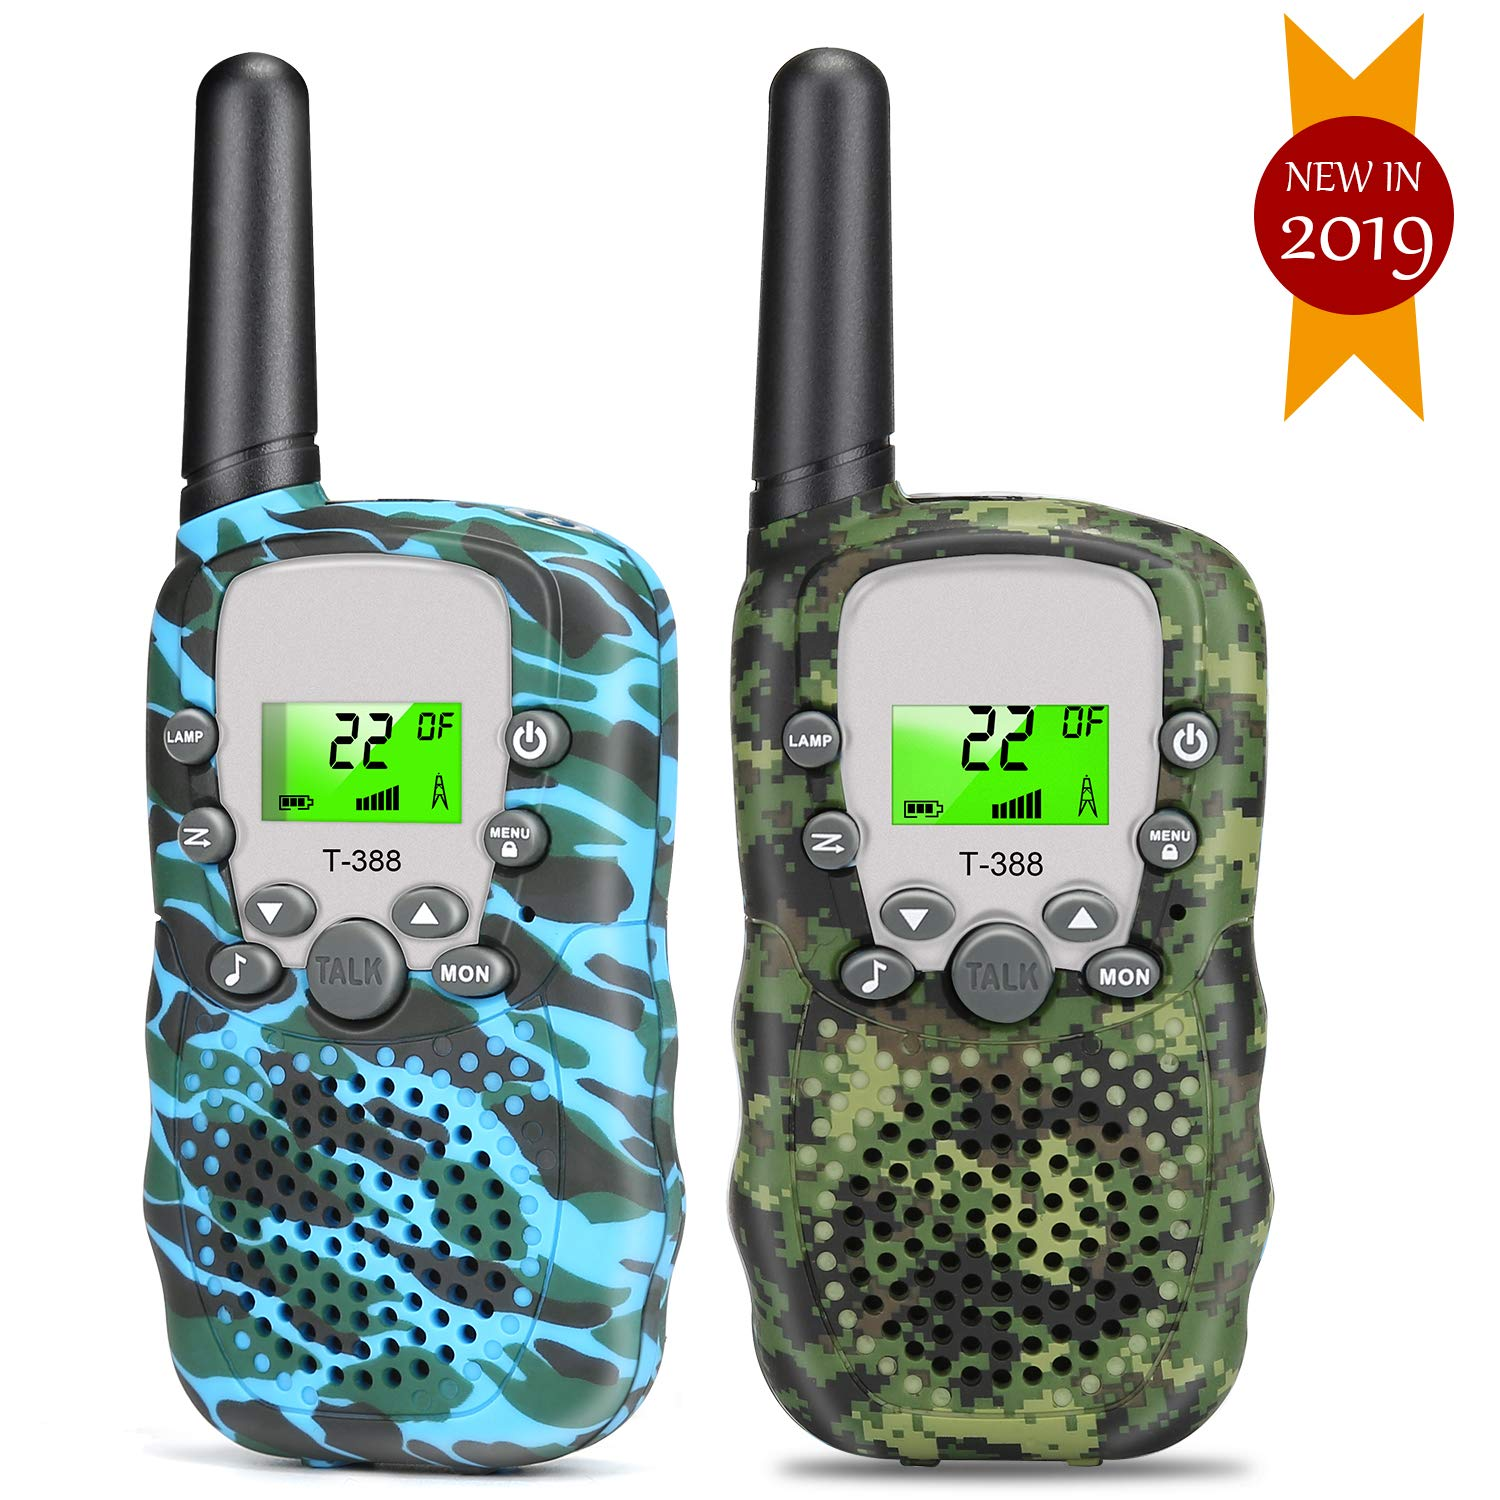 Walkie Talkies for Kids, 2 Way Radio Toy 22 Channel Great Kids Interphone, Best Gifts Toys for 4-12 Years Old Boys & Girls, Tools to Keep in Touch with Kids (2 Packs)